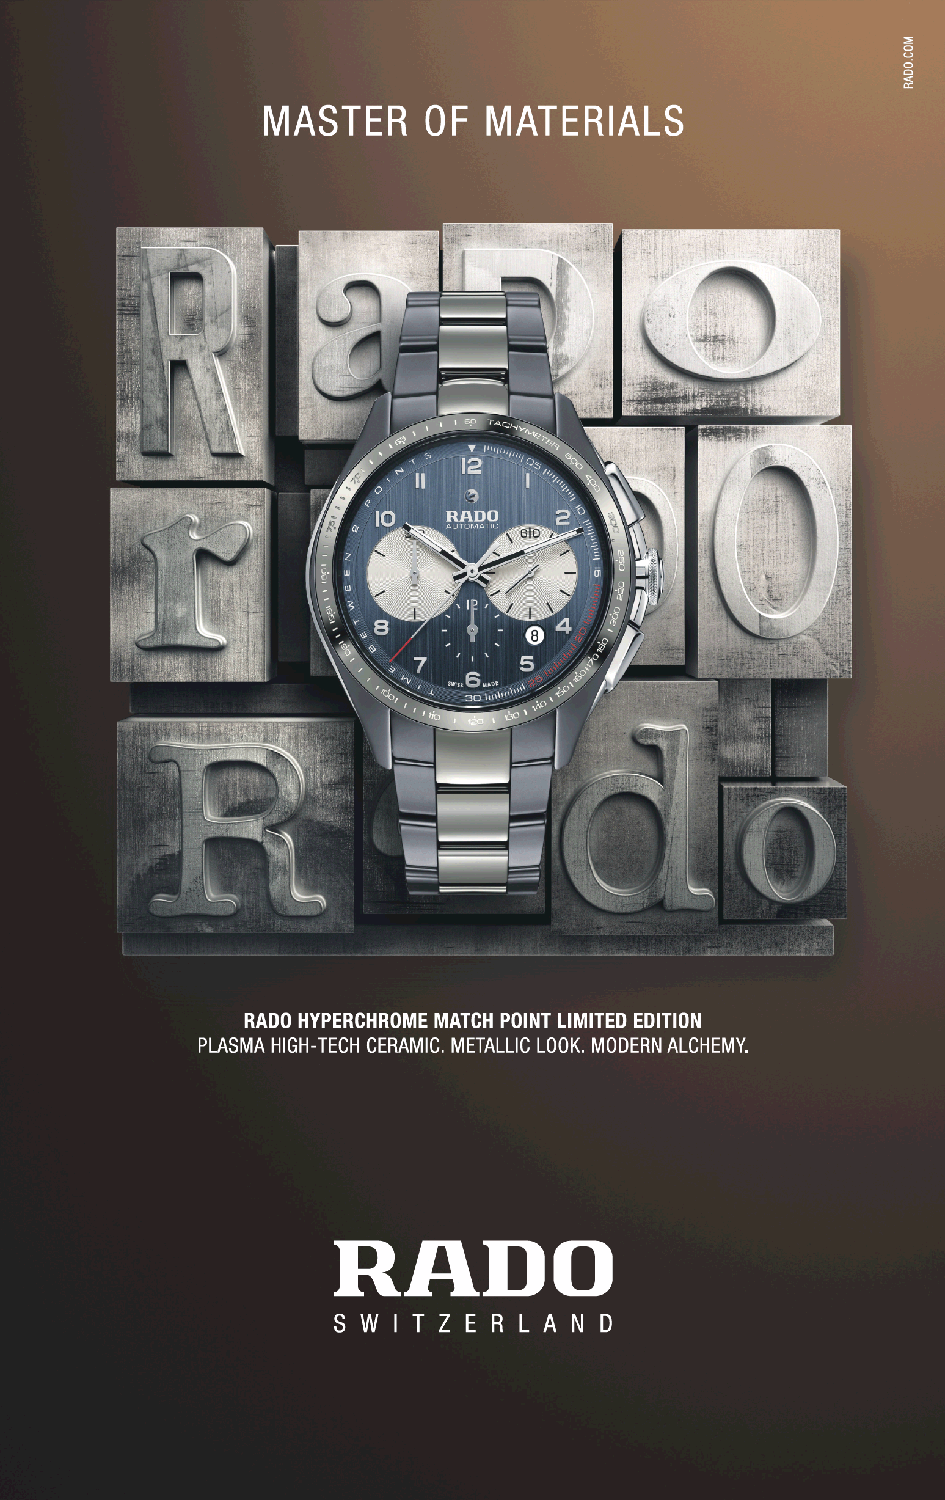 Rado Watches Myperchrome Match Ad Times Of India Mumbai Https Www Advertgallery Com Product Tag Watches Advertisem Luxury Watches For Men Rado Tag Watches